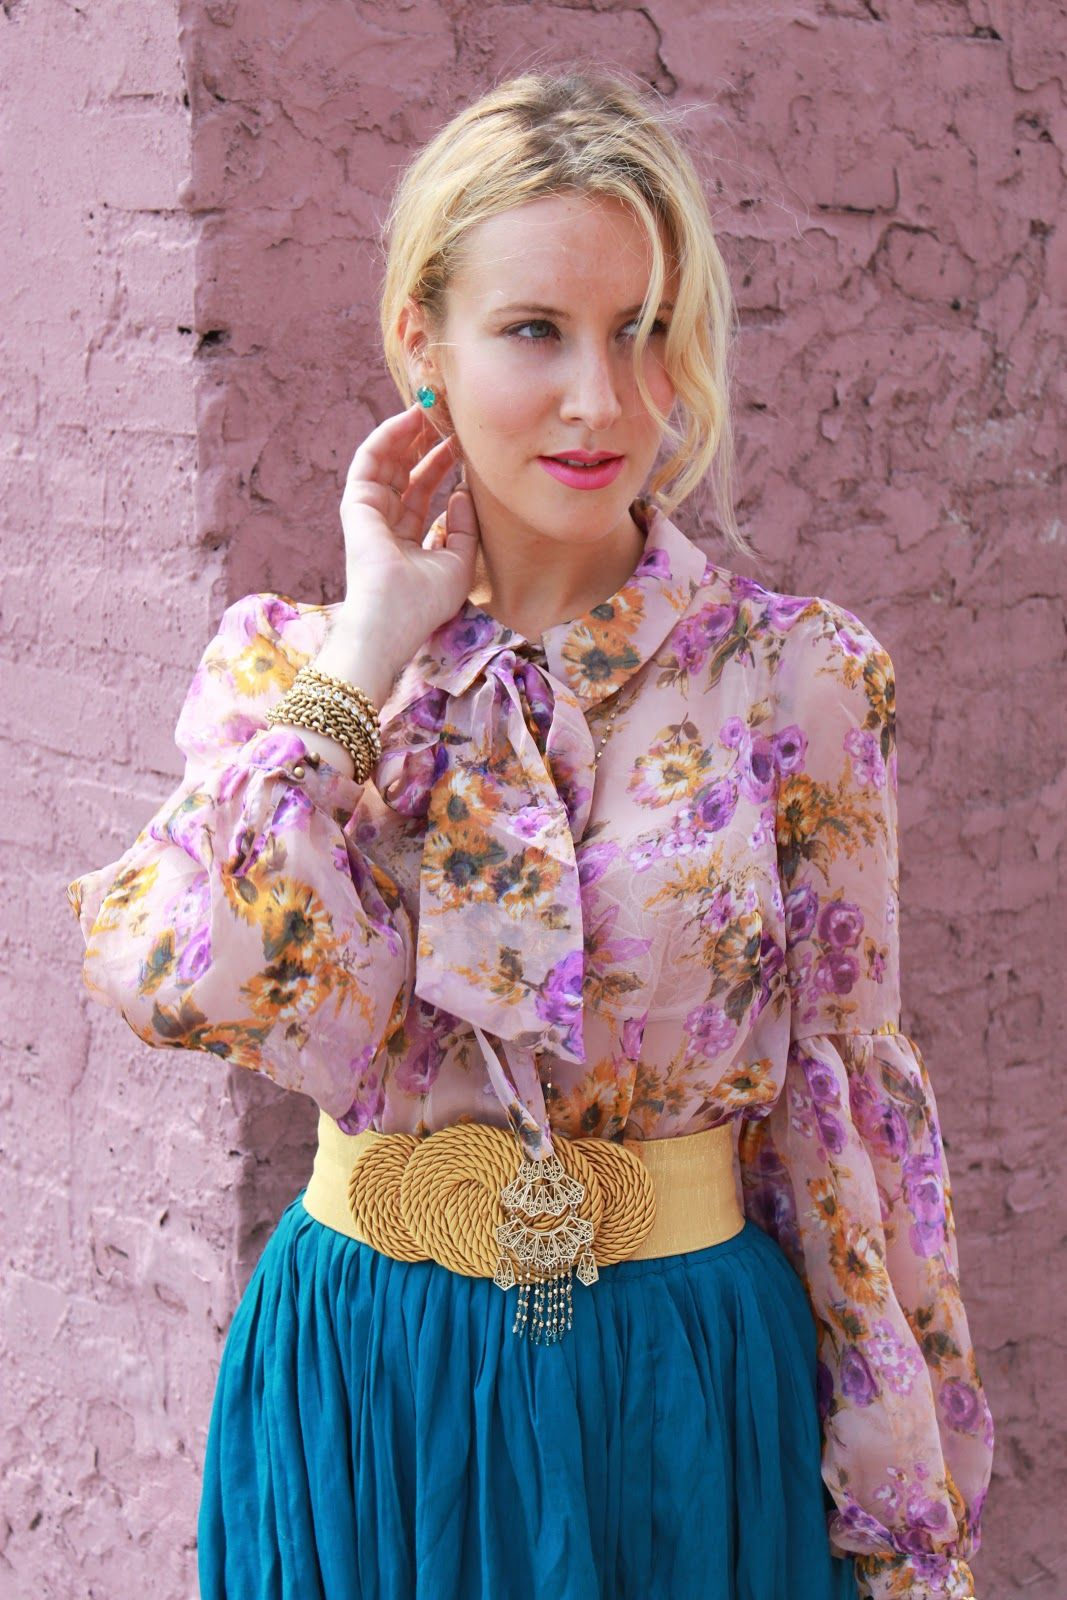 Floral print blouse with billowy sleeves, teal maxi skirt